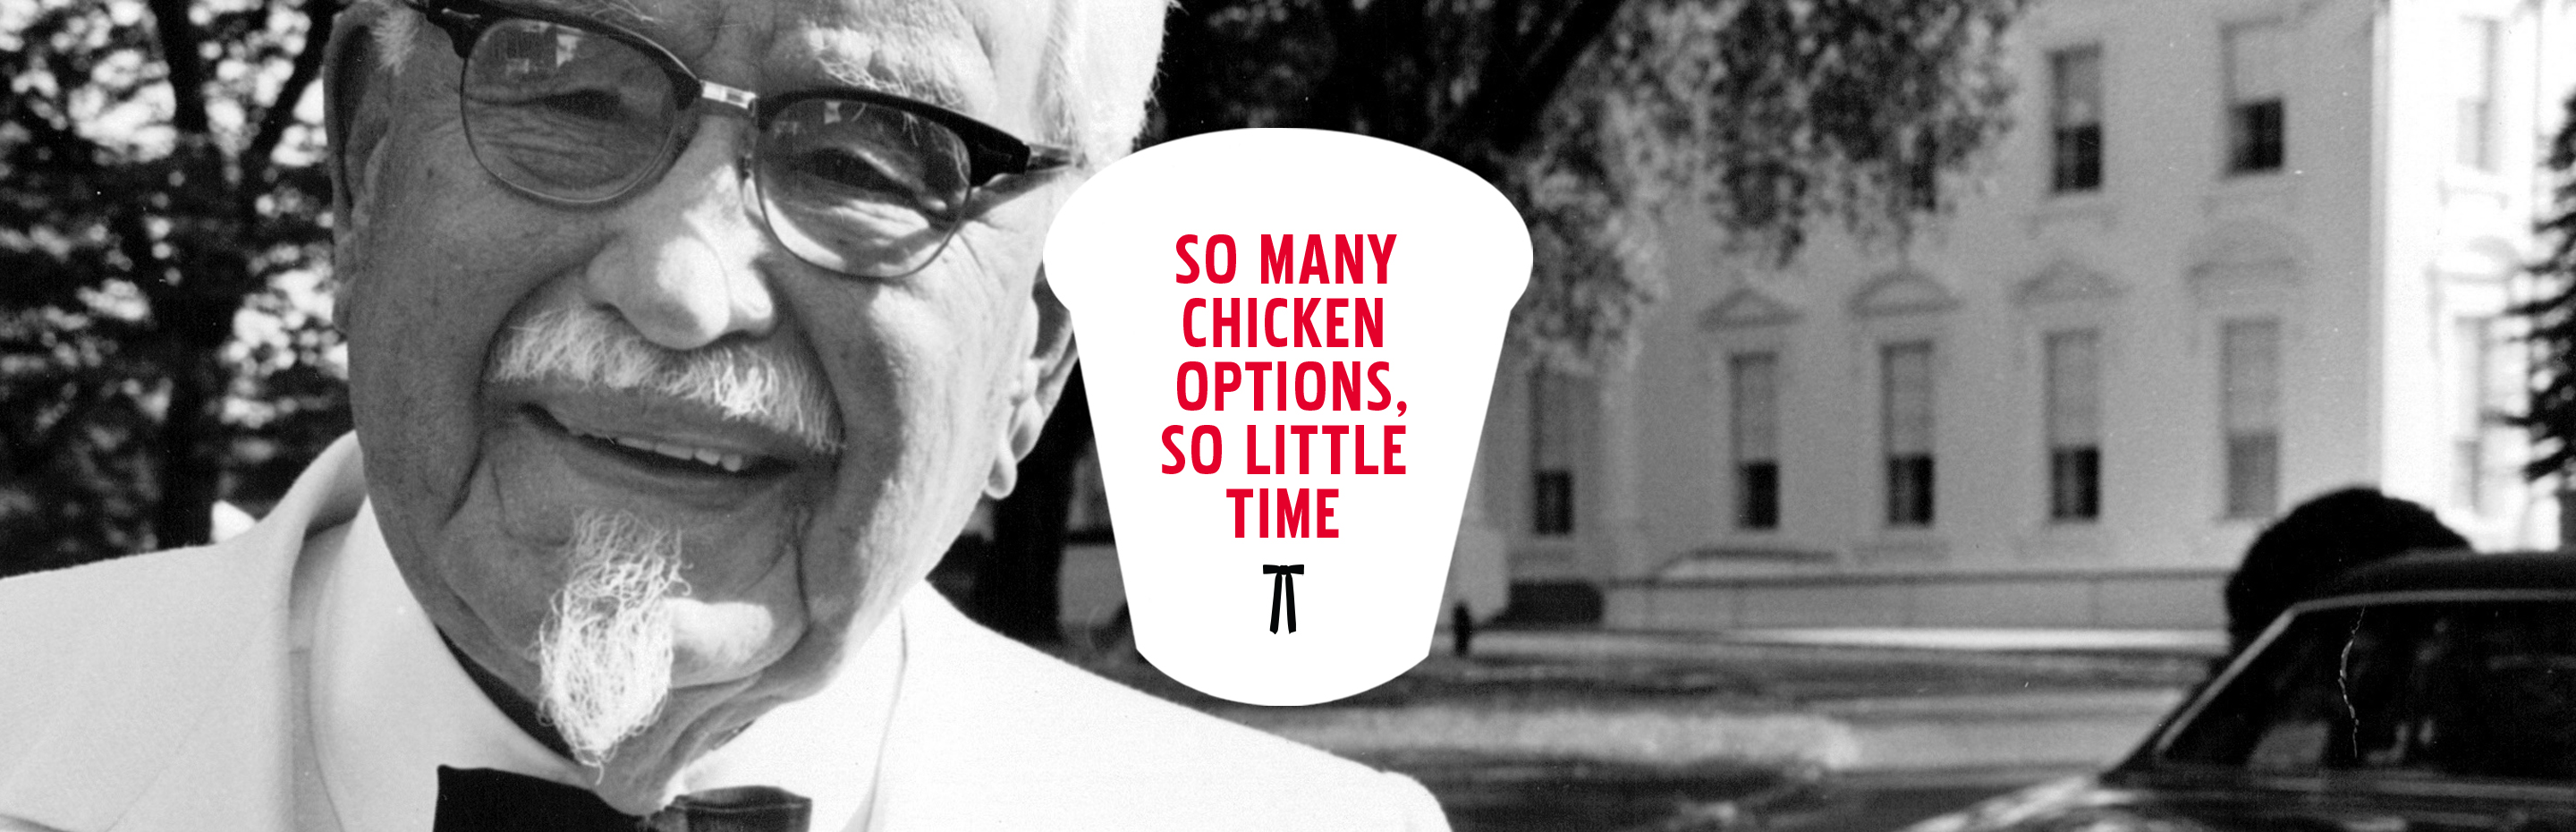 SO MANY CHICKEN OPTIONS, SO LITTLE TIME